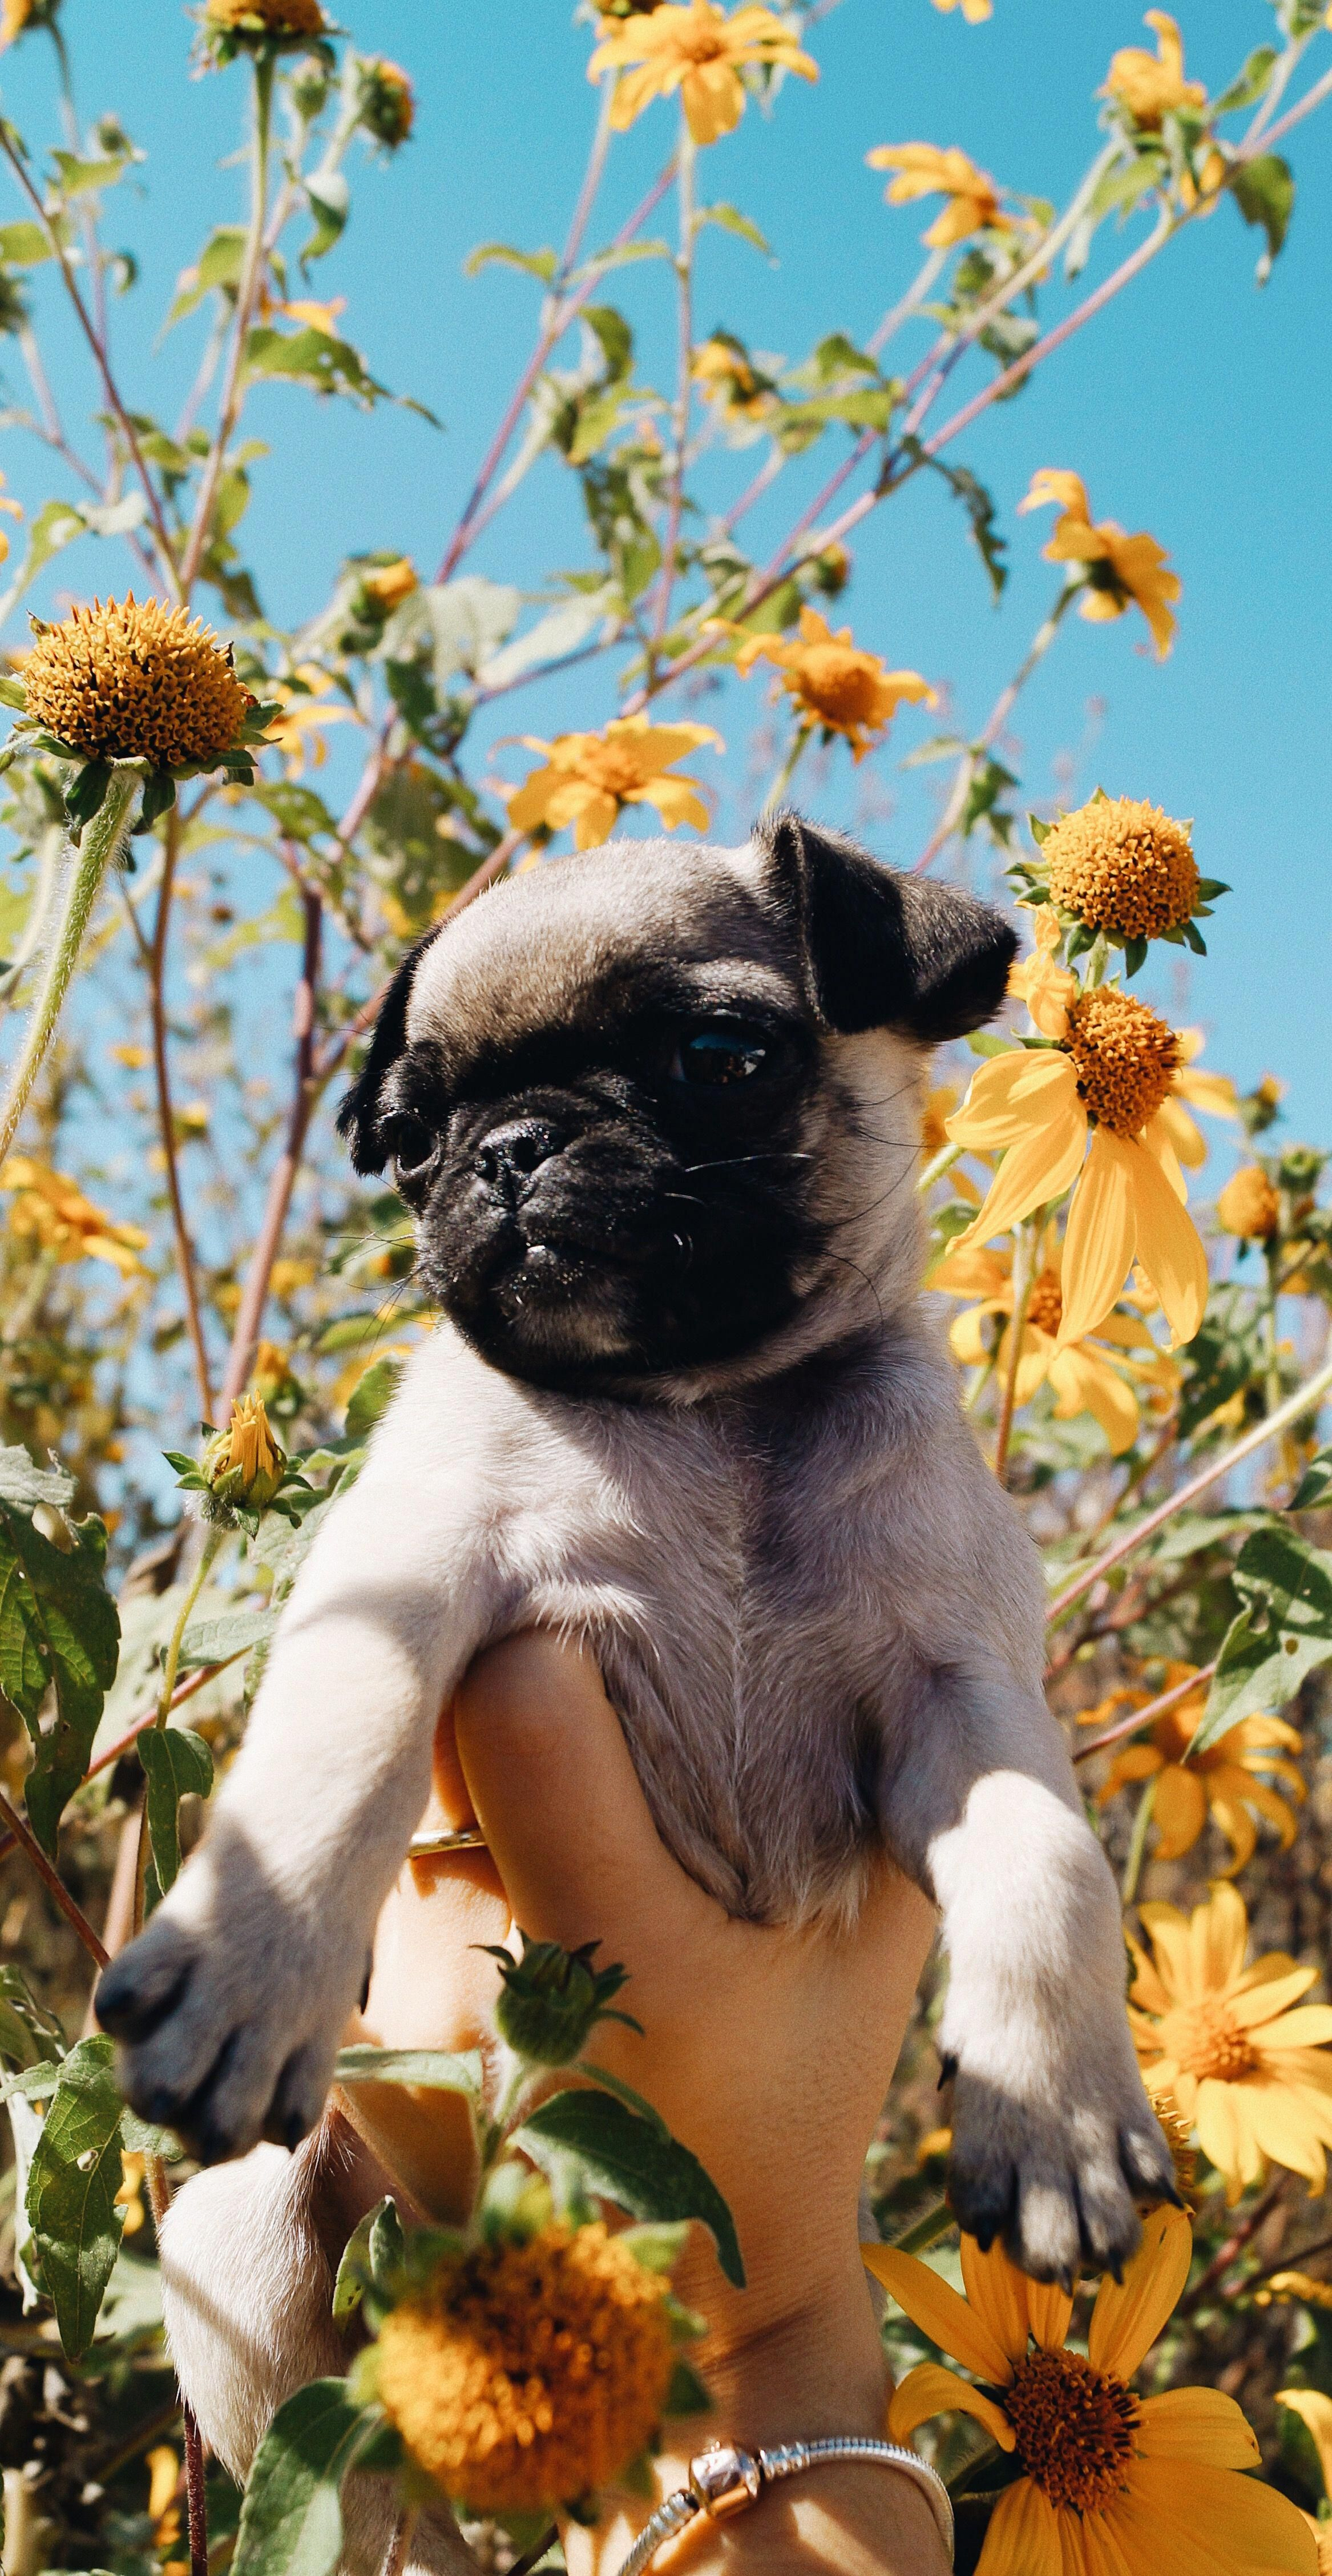 Cute Pug Wallpapers For Iphone Pug Puppy Flower Wallpaper Tumblr Dog Wallpaper